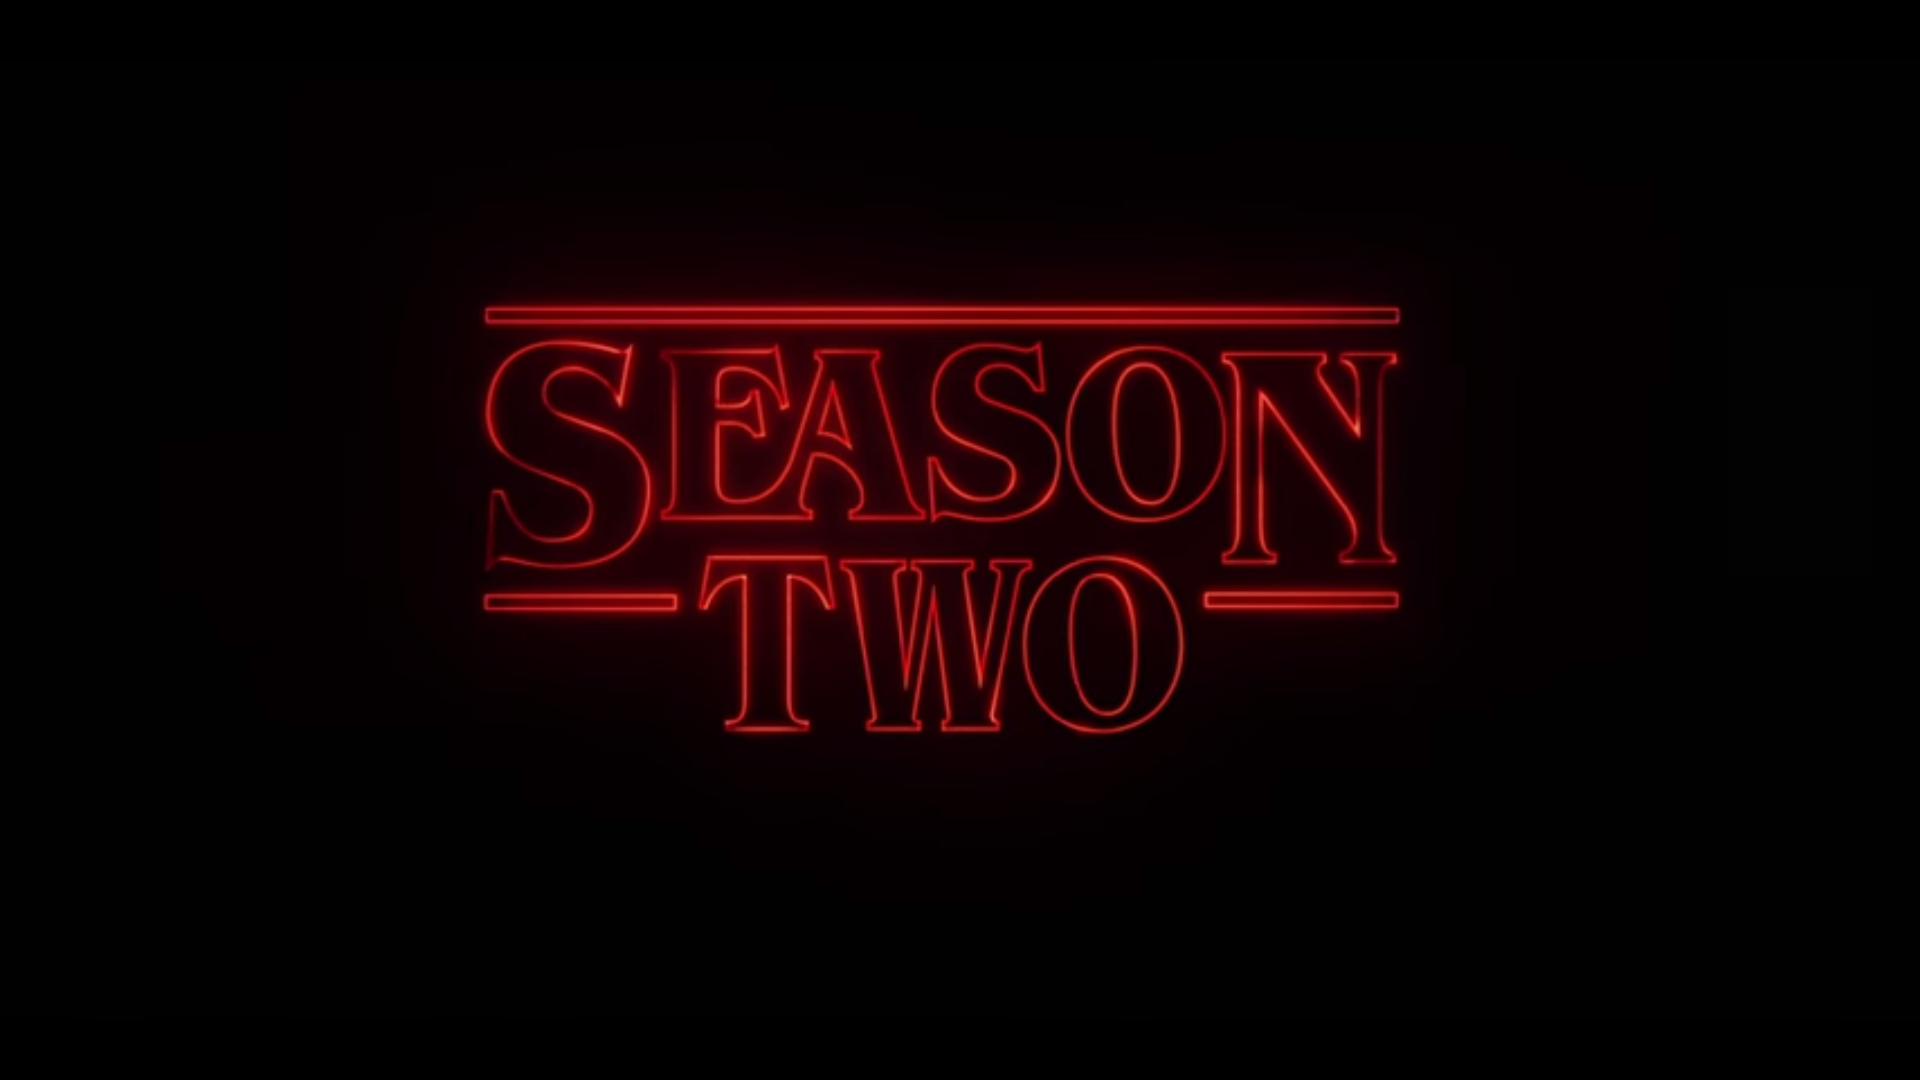 Netflix Confirms Season Two For 'Stranger Things'